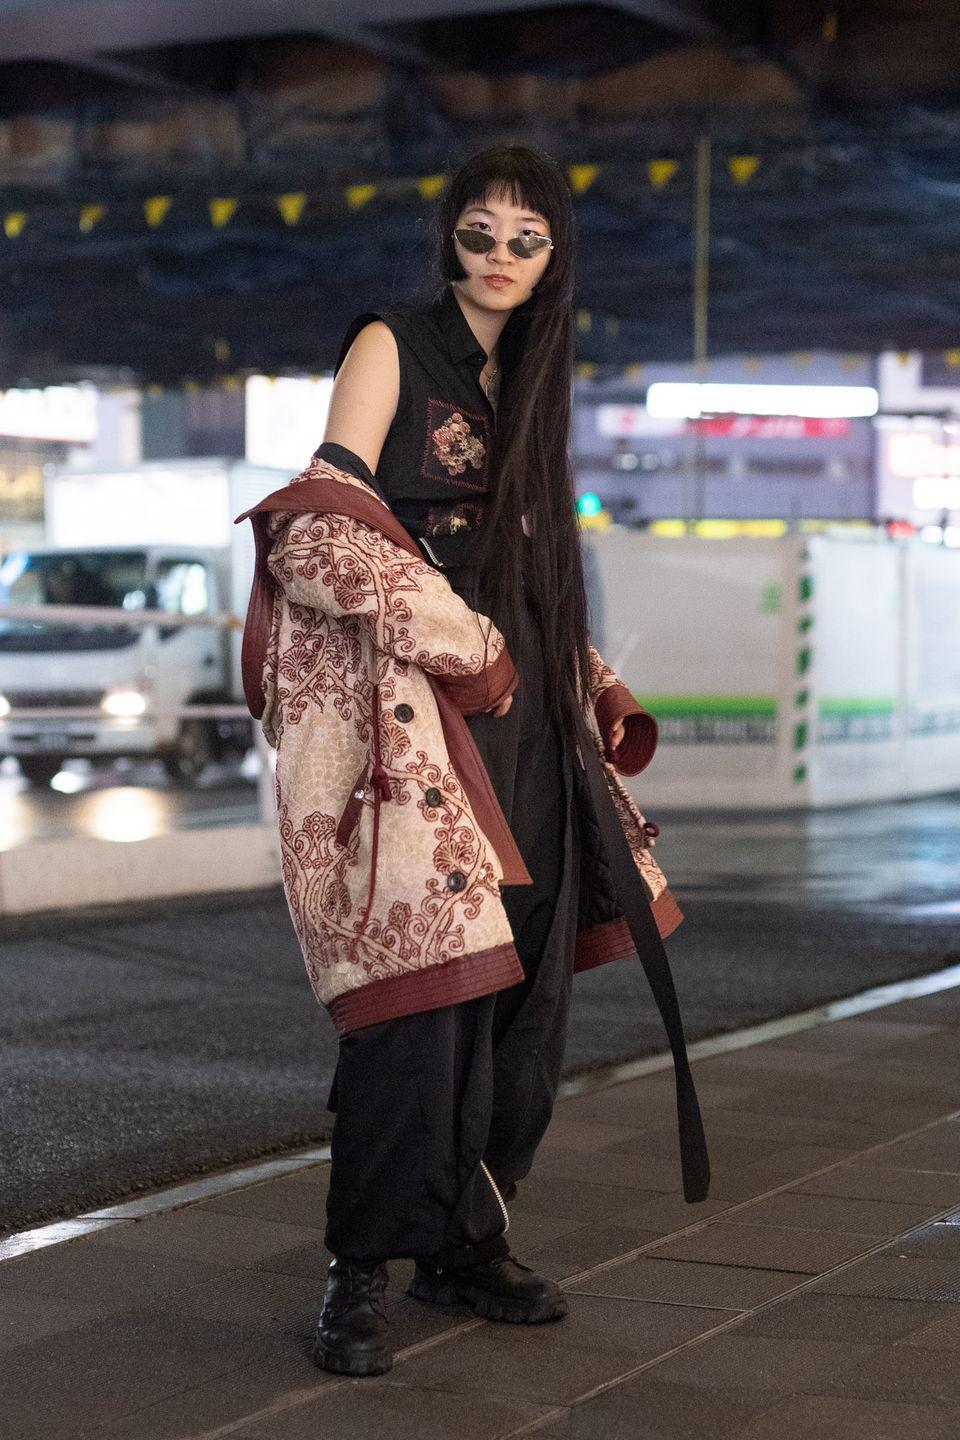 """<p>Take notes from the Tokyo street style set and opt for an oversized statement jacket over an all-black ensemble. </p><p><strong>Get the look: Gucci</strong> GG-Check tweed jacket, $3,600, <a href=""""https://go.skimresources.com?id=74968X1525079&xs=1&url=https%3A%2F%2Fwww.neimanmarcus.com%2Fp%2Fgucci-gg-check-tweed-jacket-prod226720498%3Futm_source%3Dgoogle_shopping%26adpos%3D%26scid%3Dscplpsku190431373%26sc_intid%3Dsku190431373%26ecid%3DNMCS__GooglePLA%26gclid%3DCj0KCQjwreT8BRDTARIsAJLI0KKw4xEGYYkuvw_cfkRmse4tl7RzAnmdWWYwEqg80KMunqI5DyGtydcaAijIEALw_wcB%26gclsrc%3Daw.ds"""" rel=""""nofollow noopener"""" target=""""_blank"""" data-ylk=""""slk:neimanmarcus.com"""" class=""""link rapid-noclick-resp"""">neimanmarcus.com</a>.</p>"""